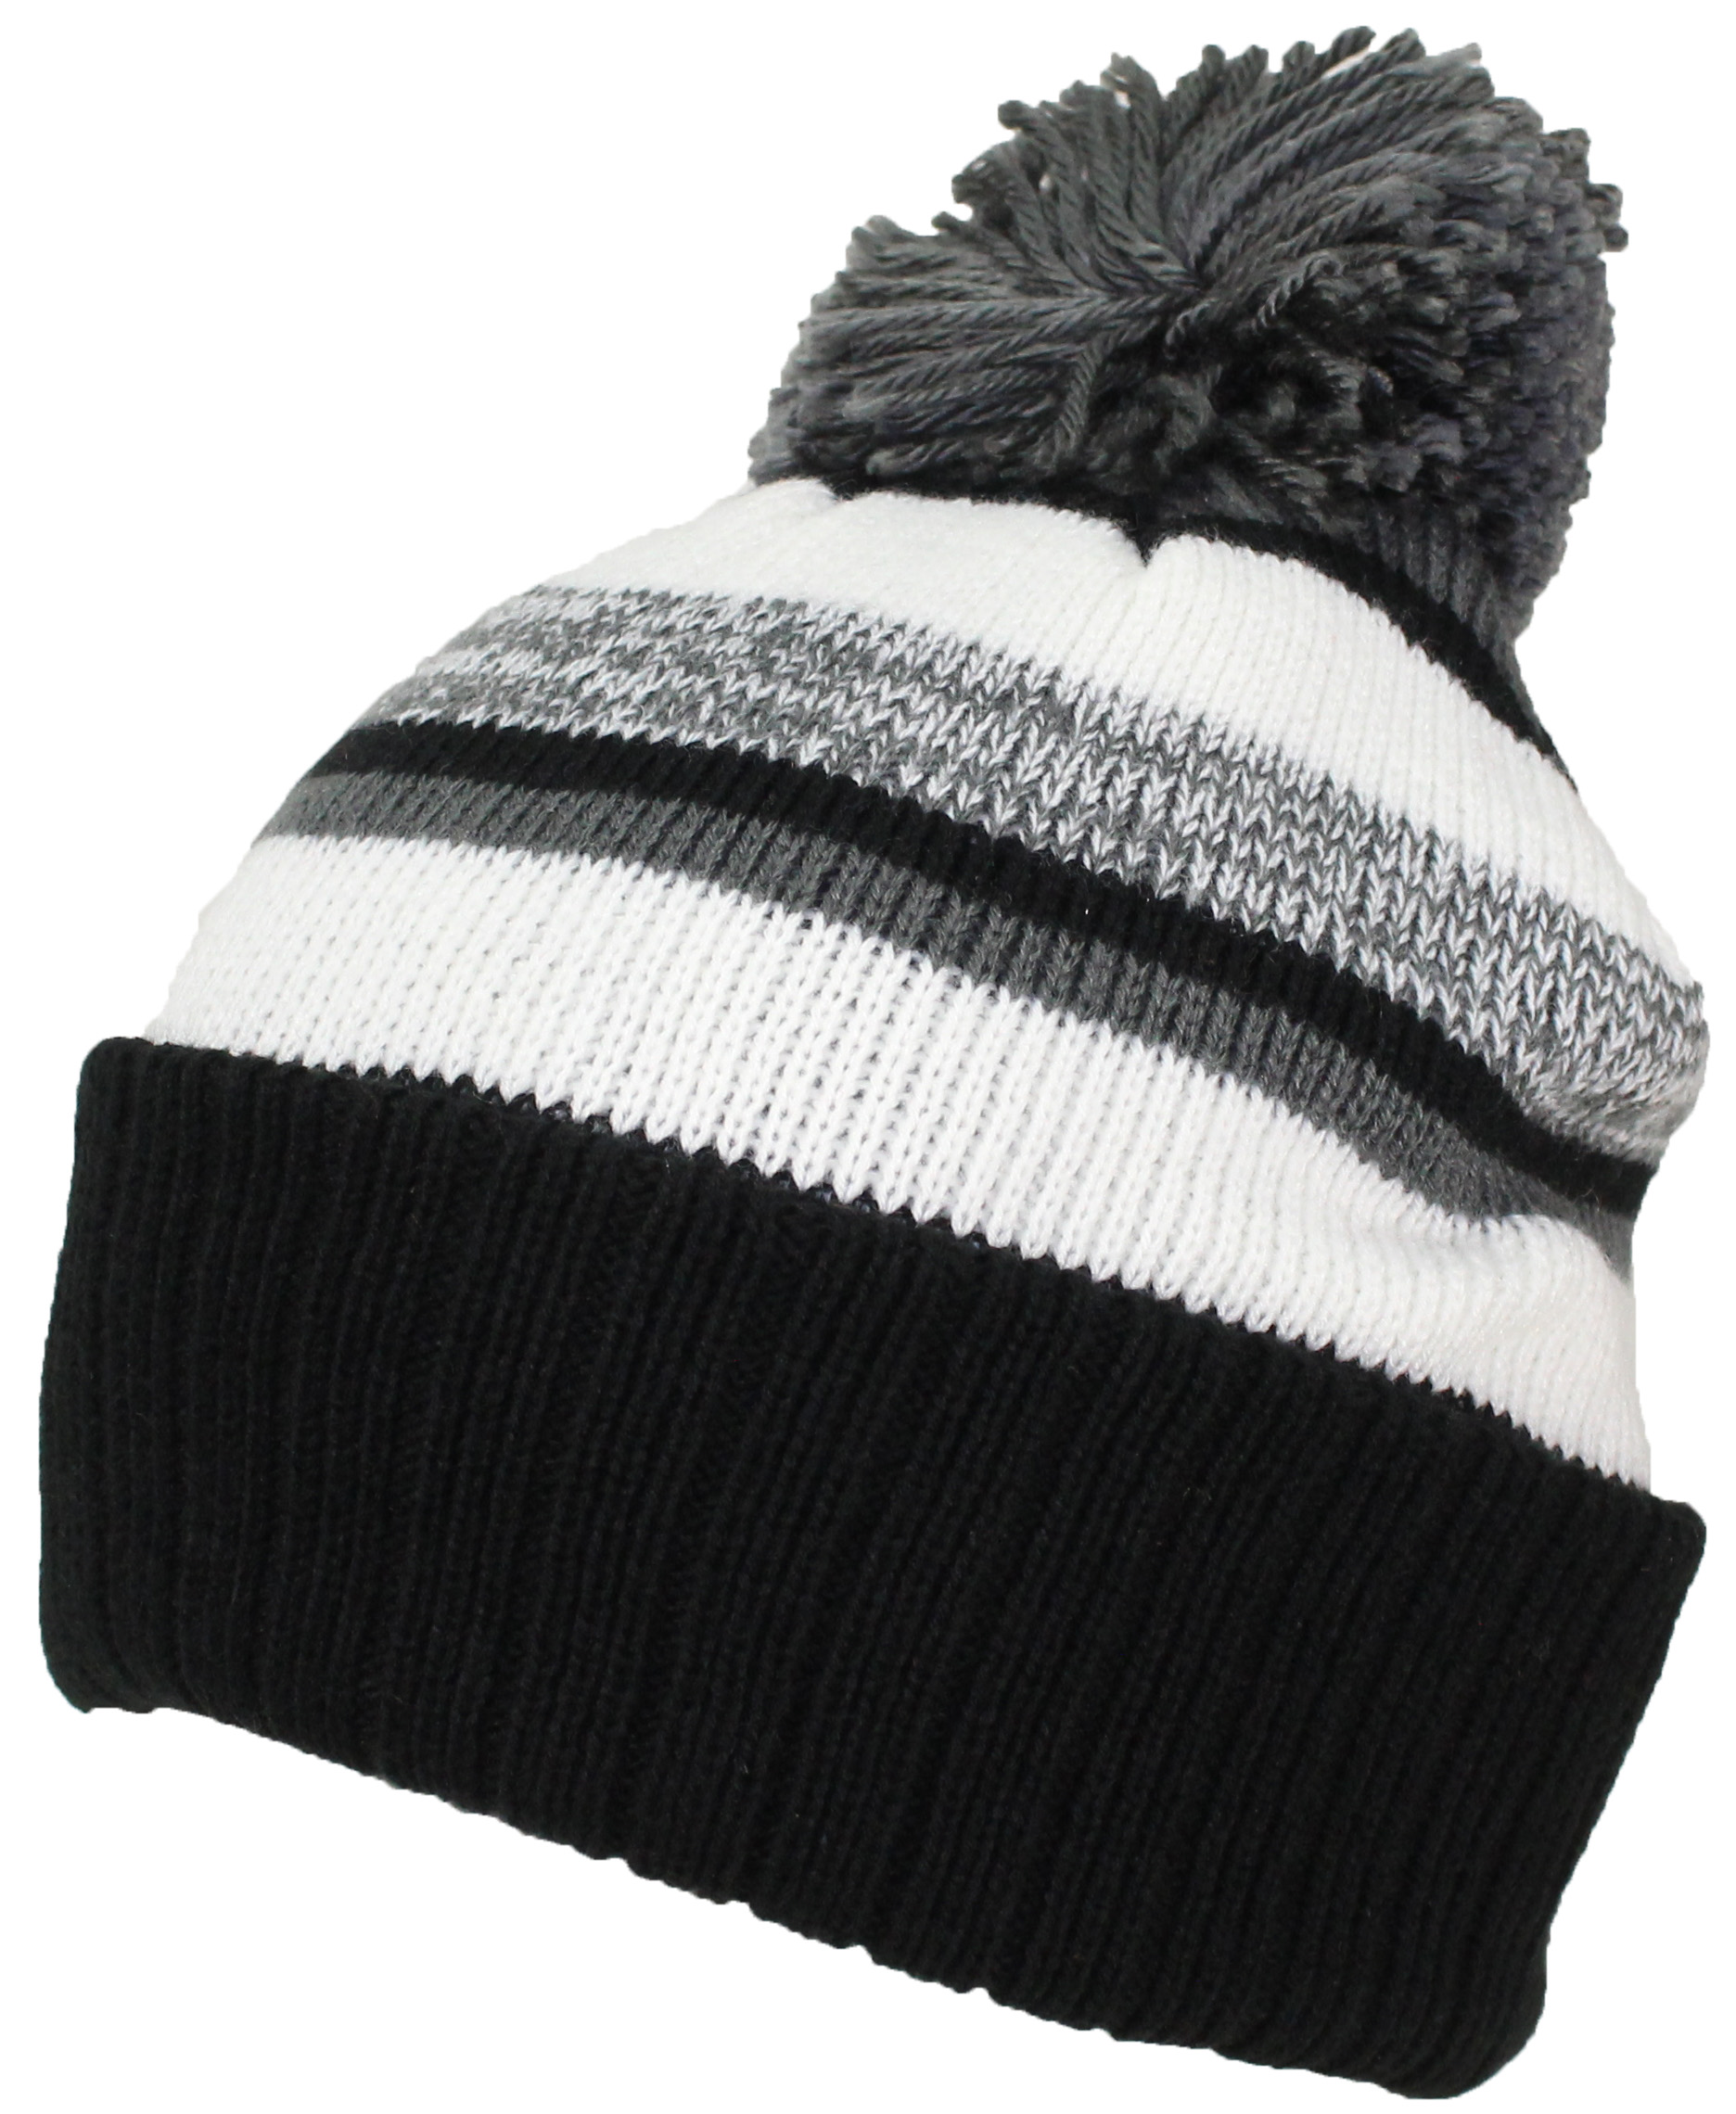 best winter hats quality striped variegated cuffed beanie. Black Bedroom Furniture Sets. Home Design Ideas